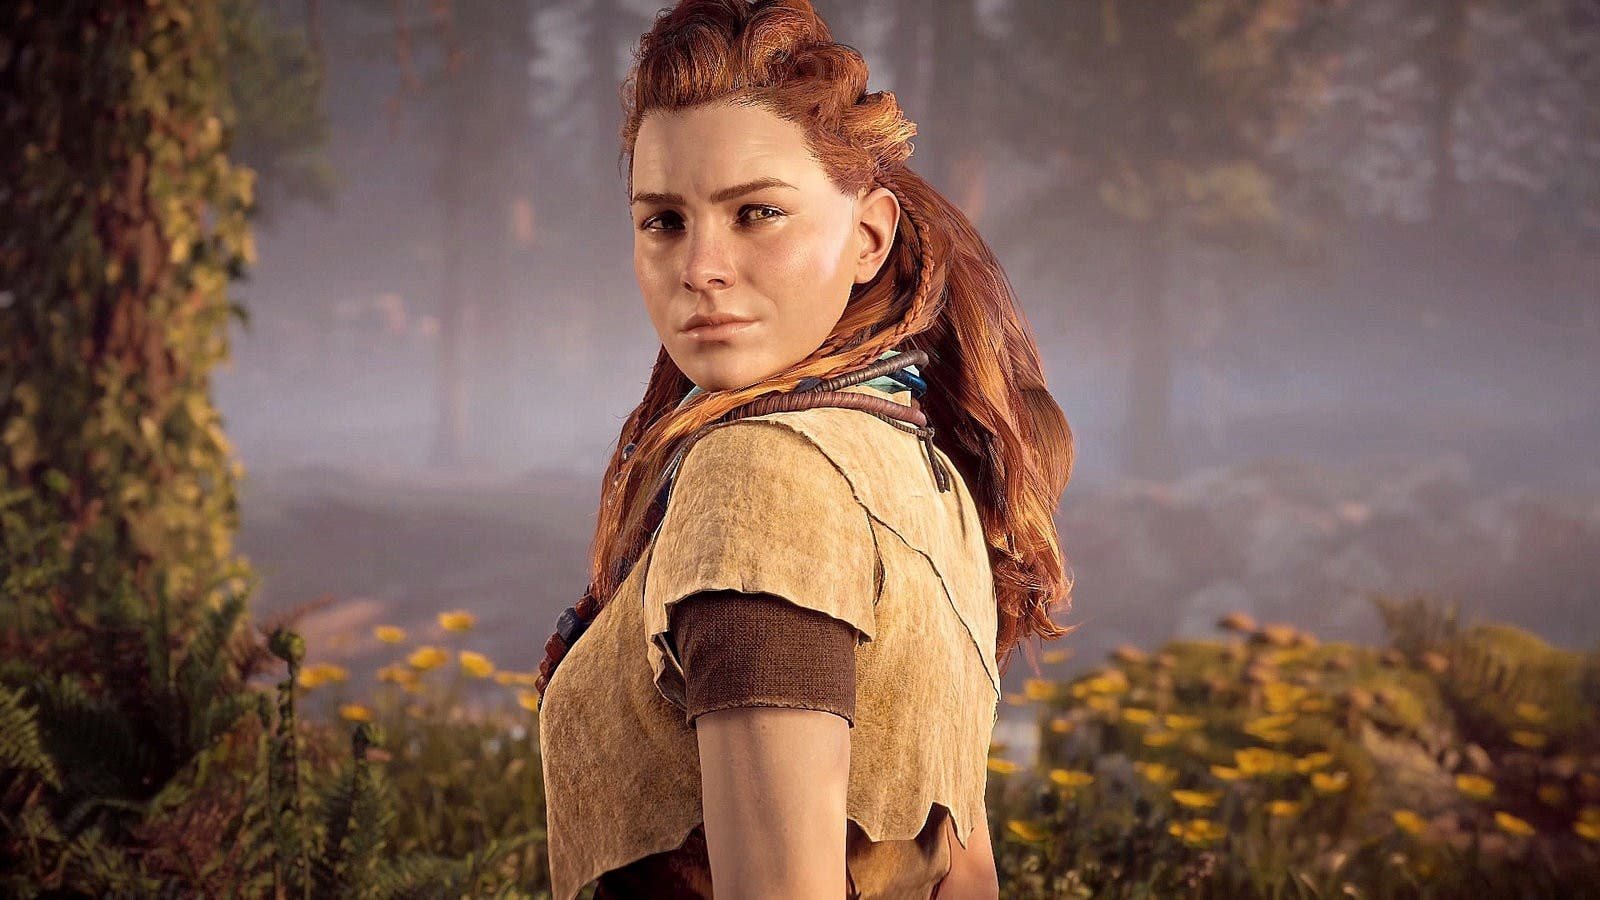 Imagen de Un rumor vuelve a apuntar a Horizon Zero Dawn en PC como exclusivo de Epic Games Store